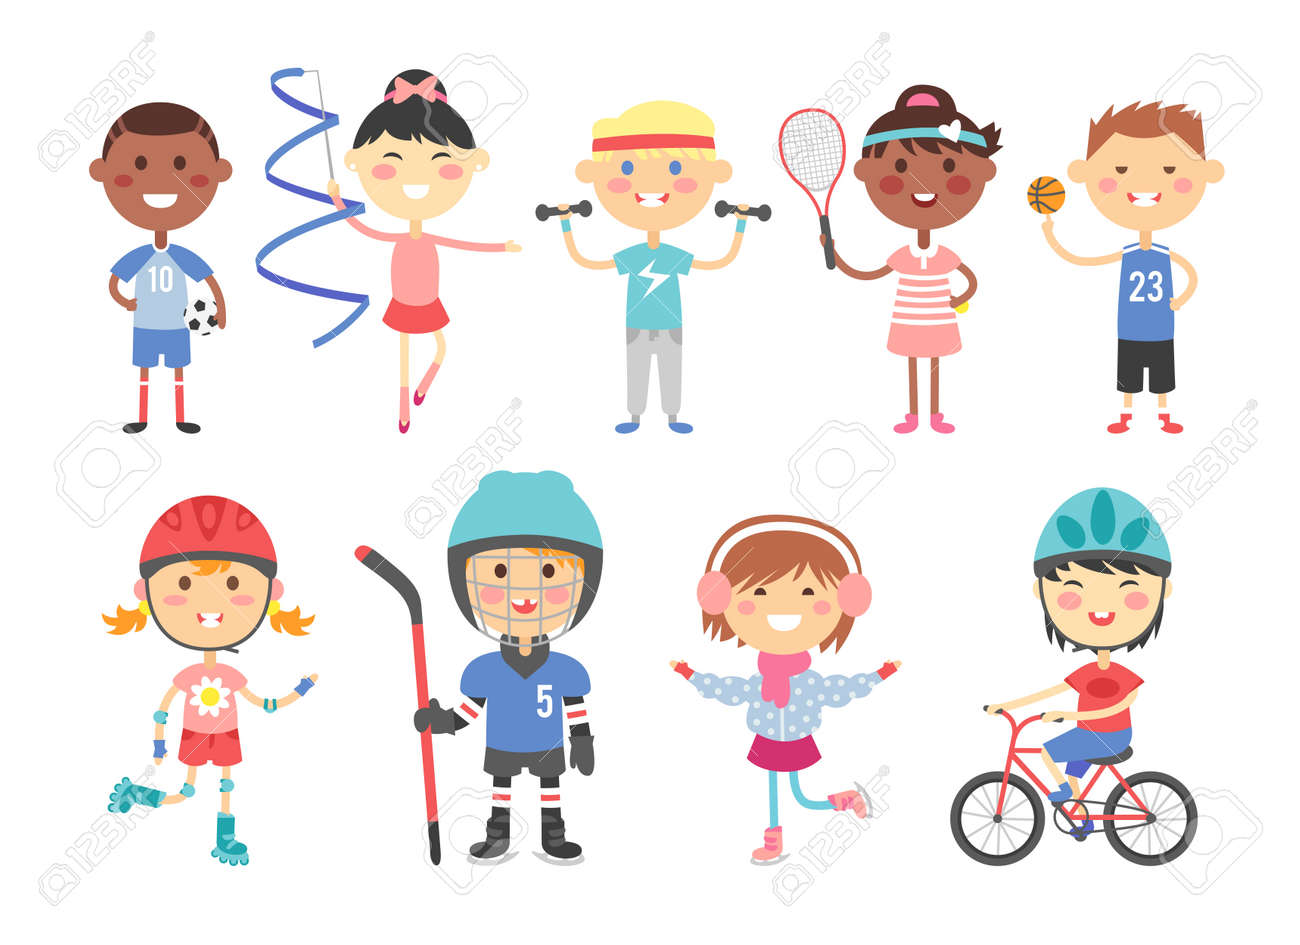 Sport kids characters with toys and sport kids activity group, kids playing various sports games such us hockey, football, gymnastics, fitness, tennis, basketball, roller skating, bike flat vector. - 54707452